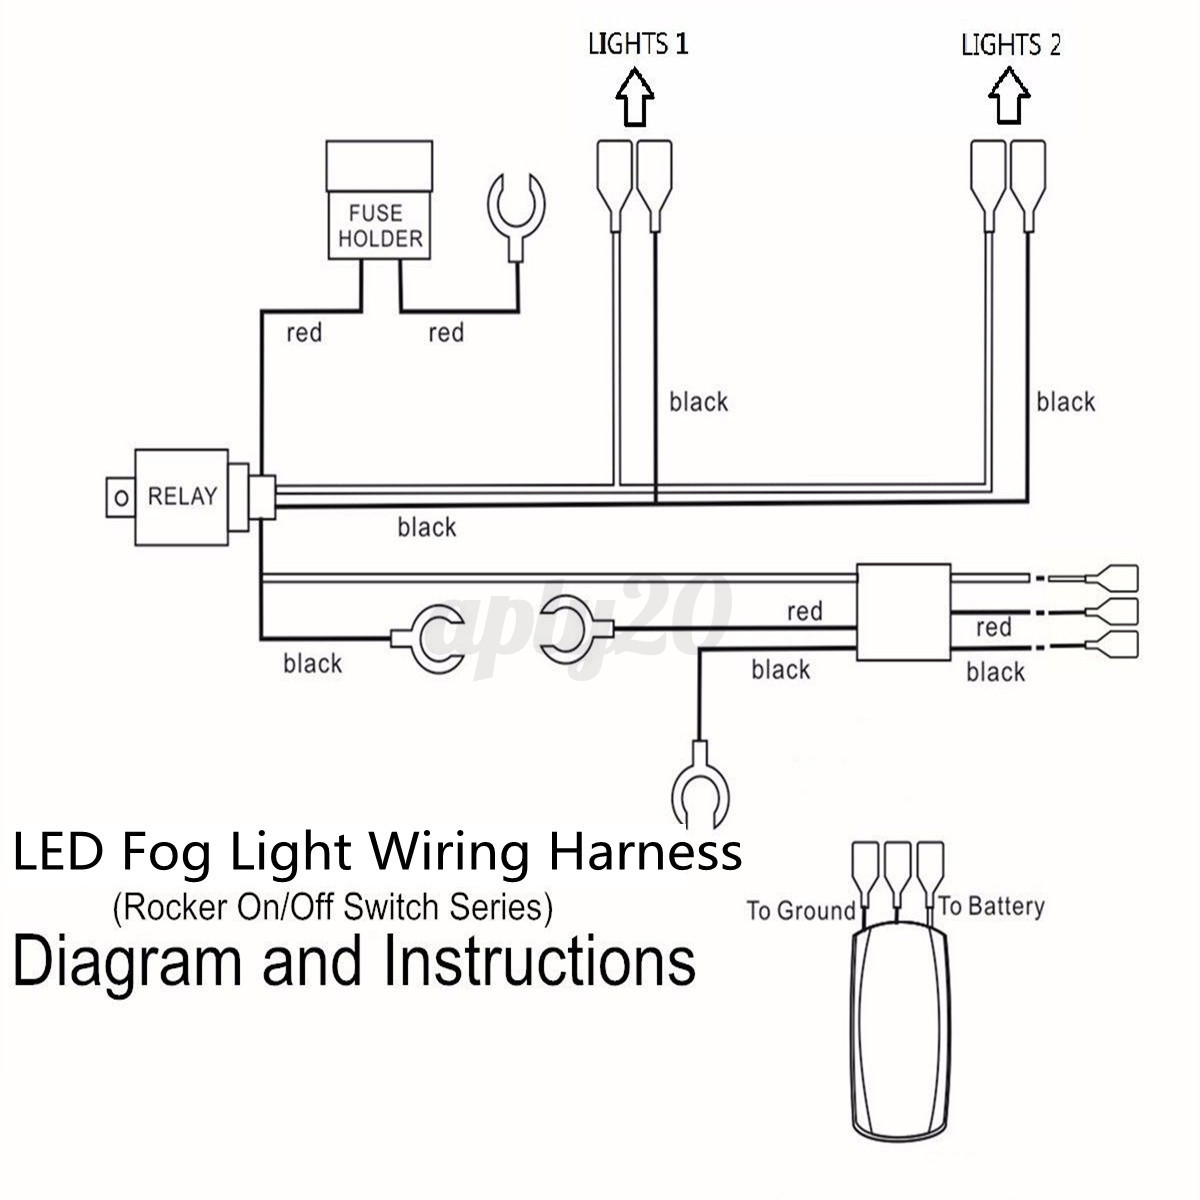 driving light wiring kit driving image wiring diagram universal wiring kit led fog light driving lamp wiring harness on driving light wiring kit